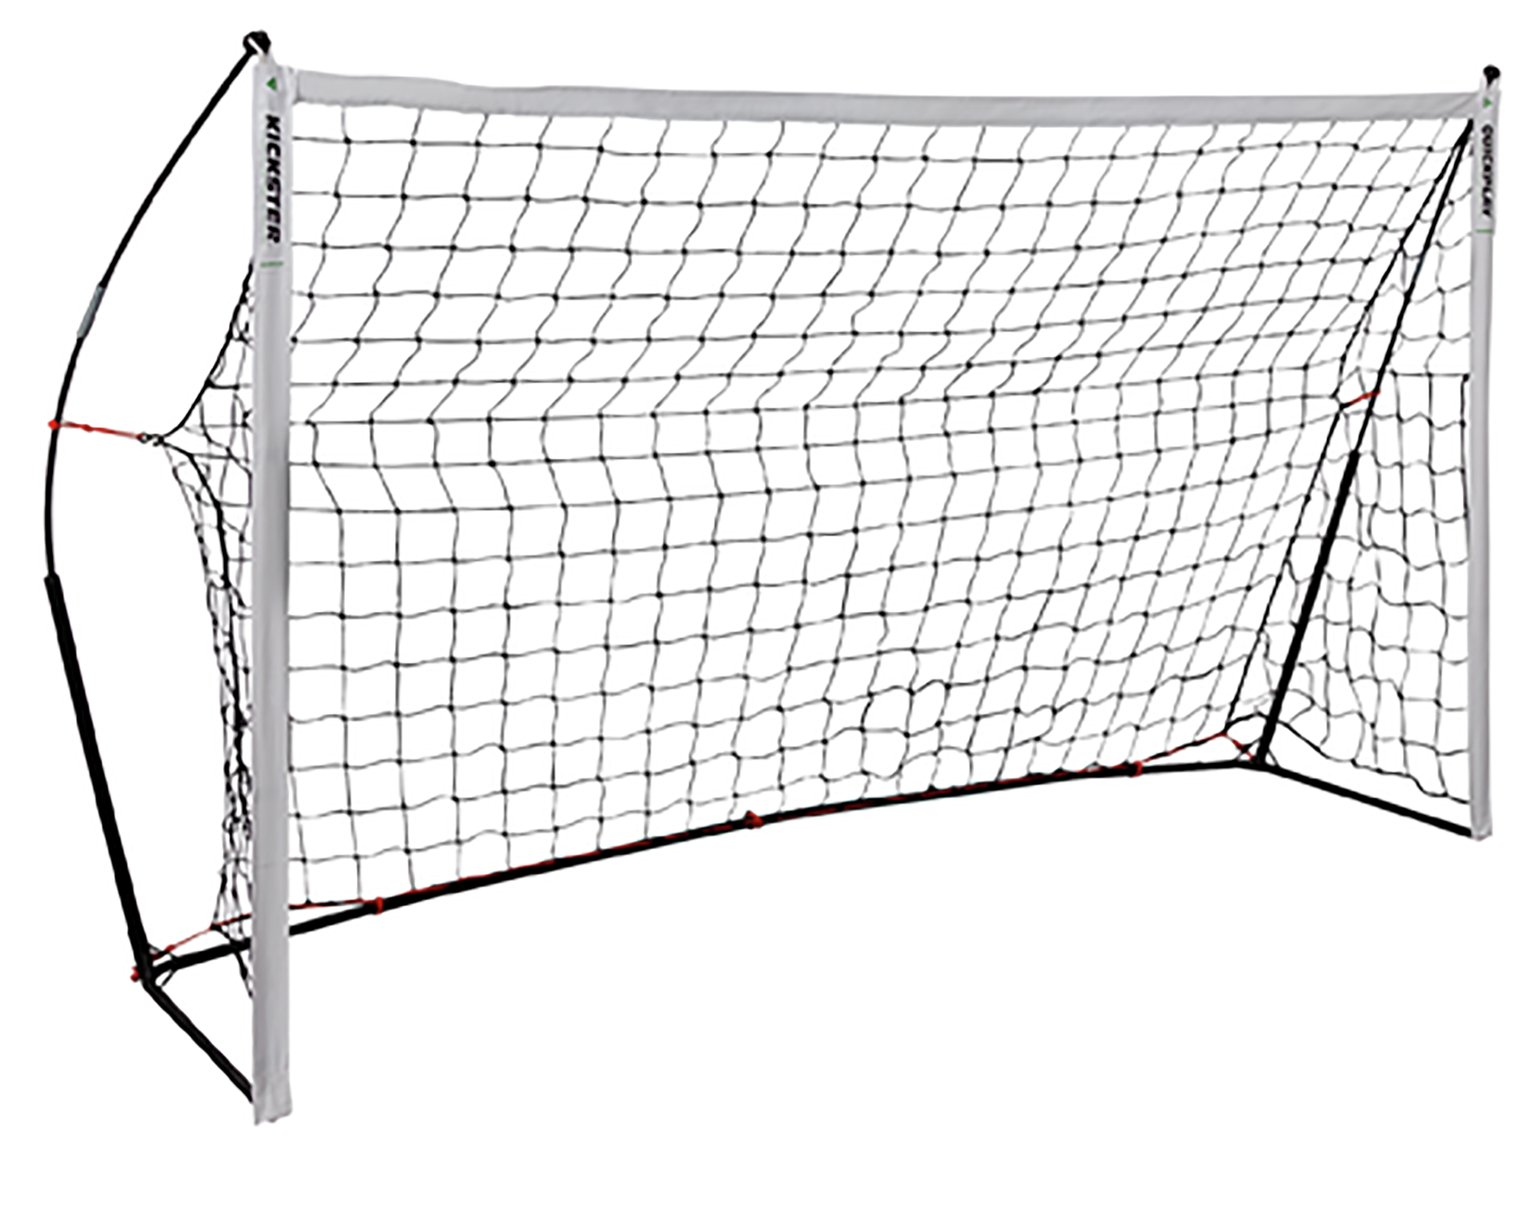 Kickster Academy 8 x 5 ft Football Goal